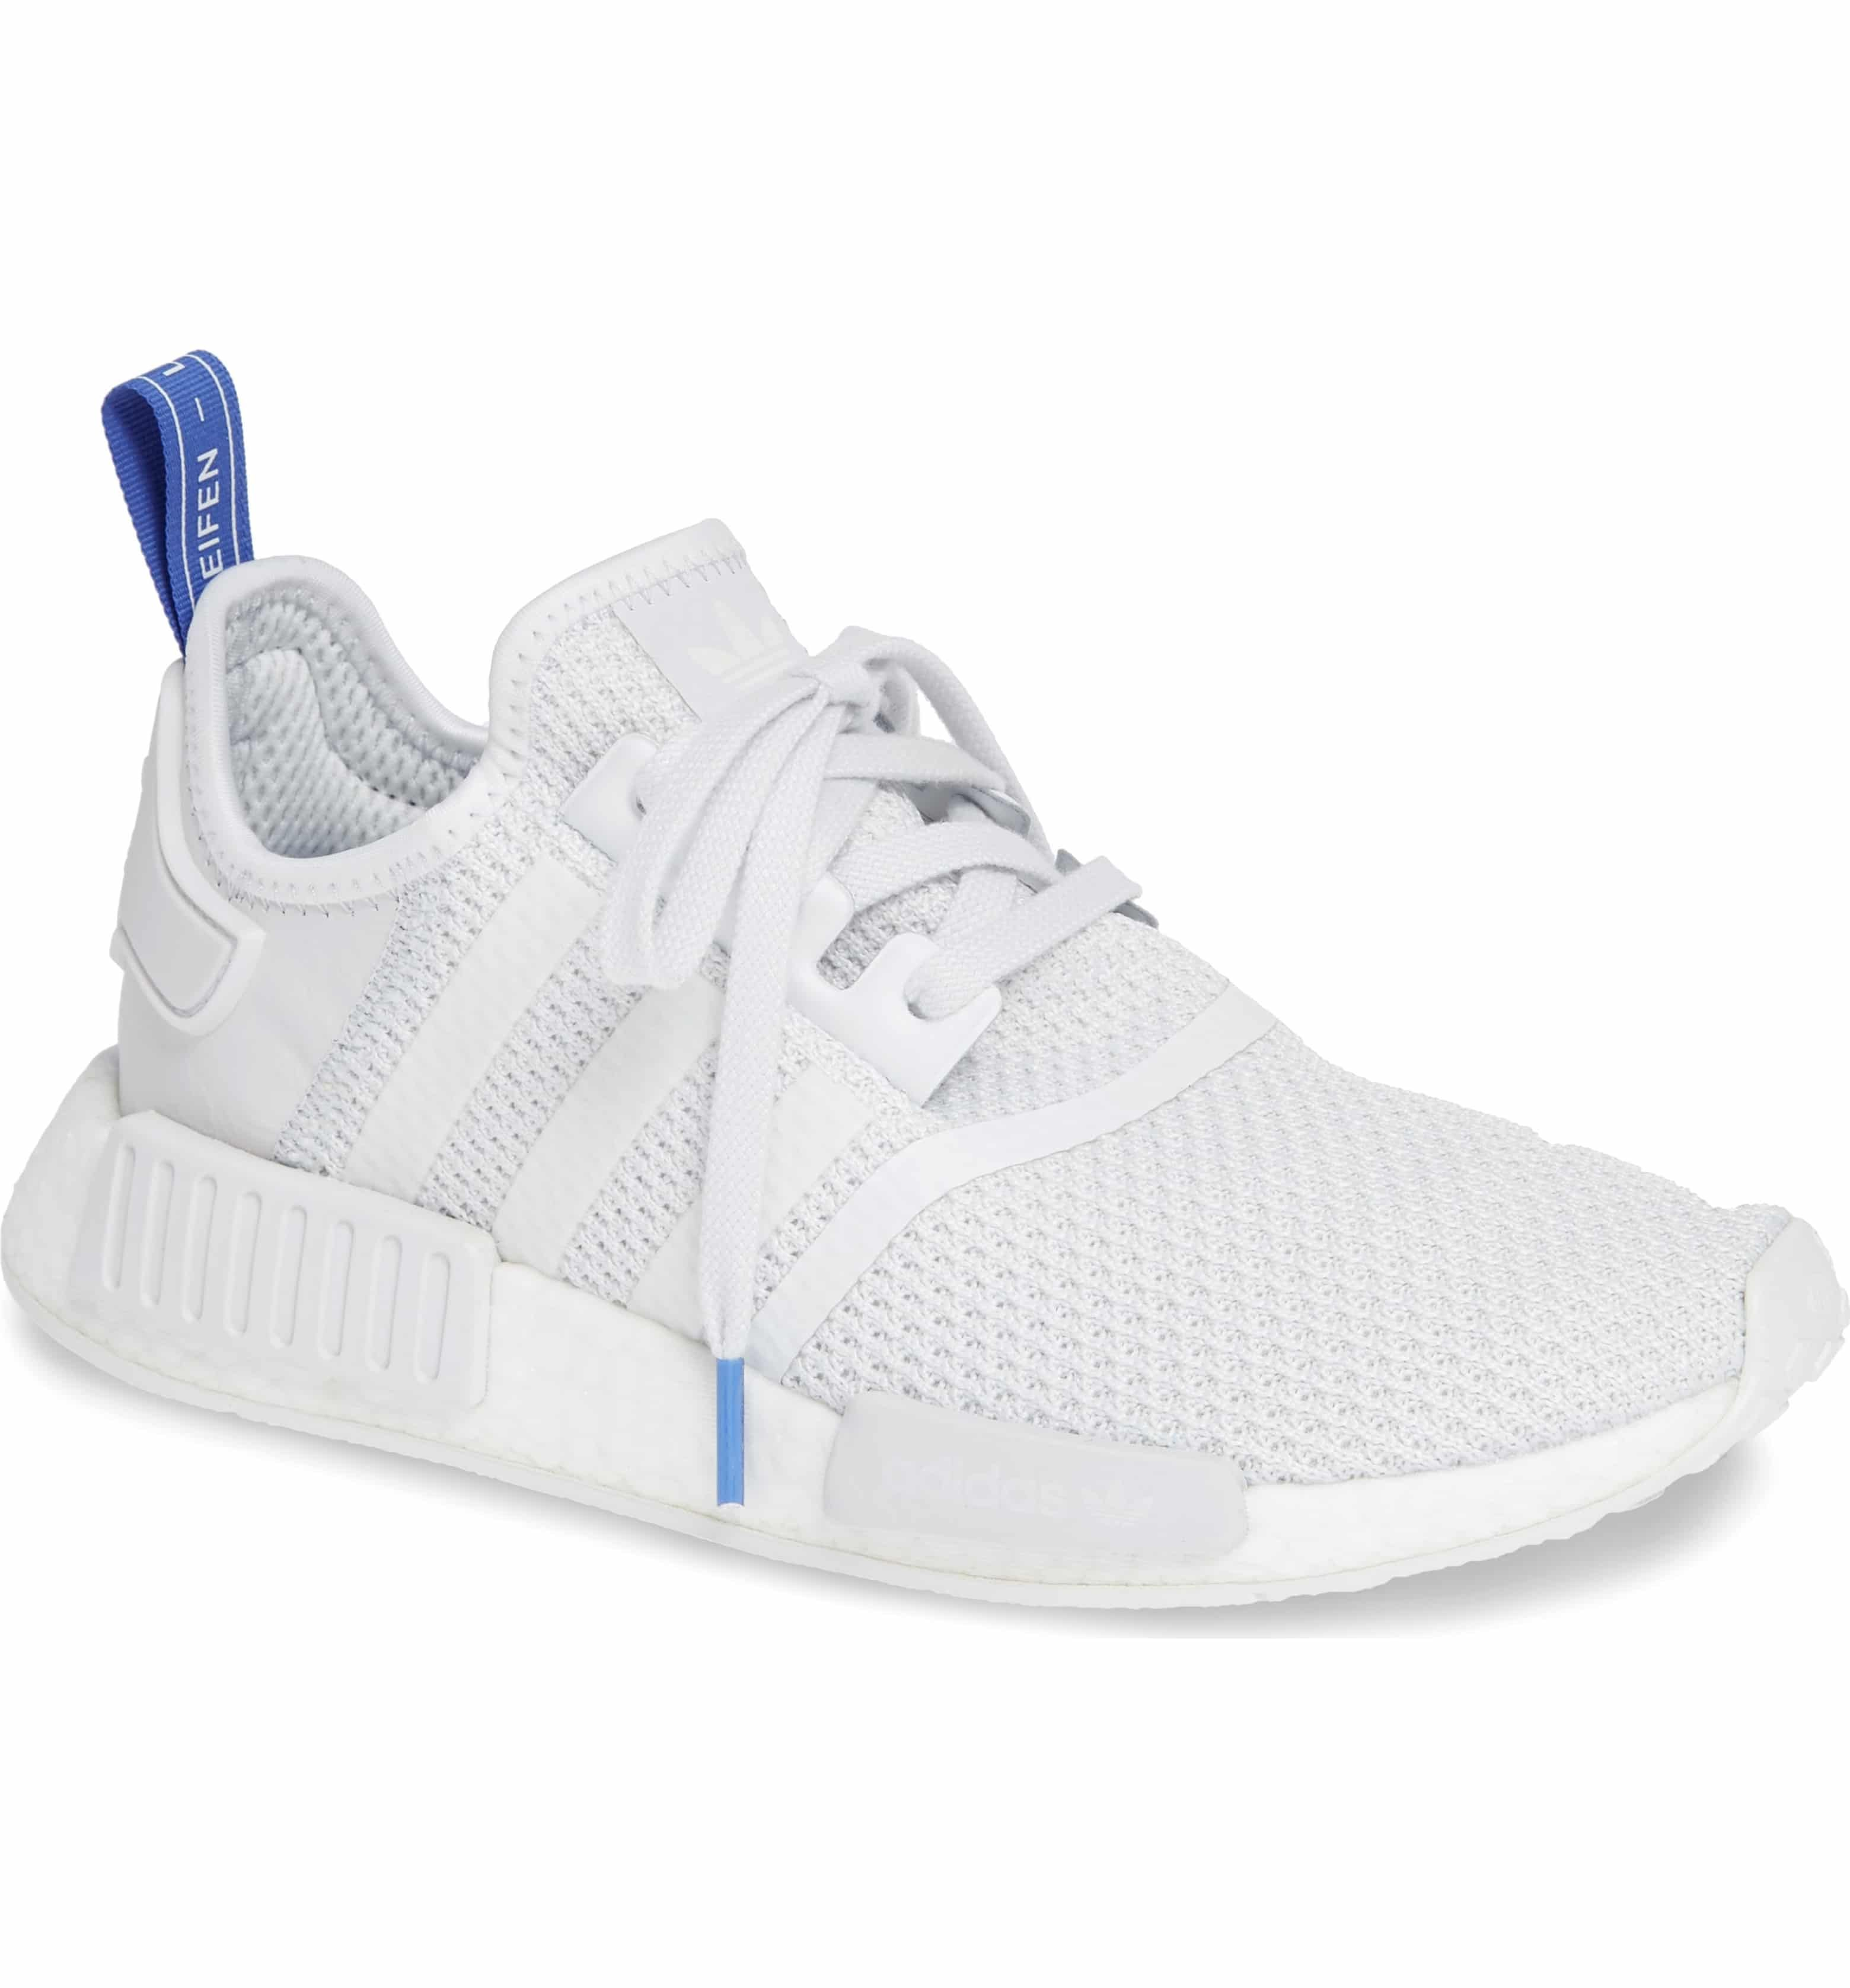 78151b3e5 NMD R1 Athletic Shoe